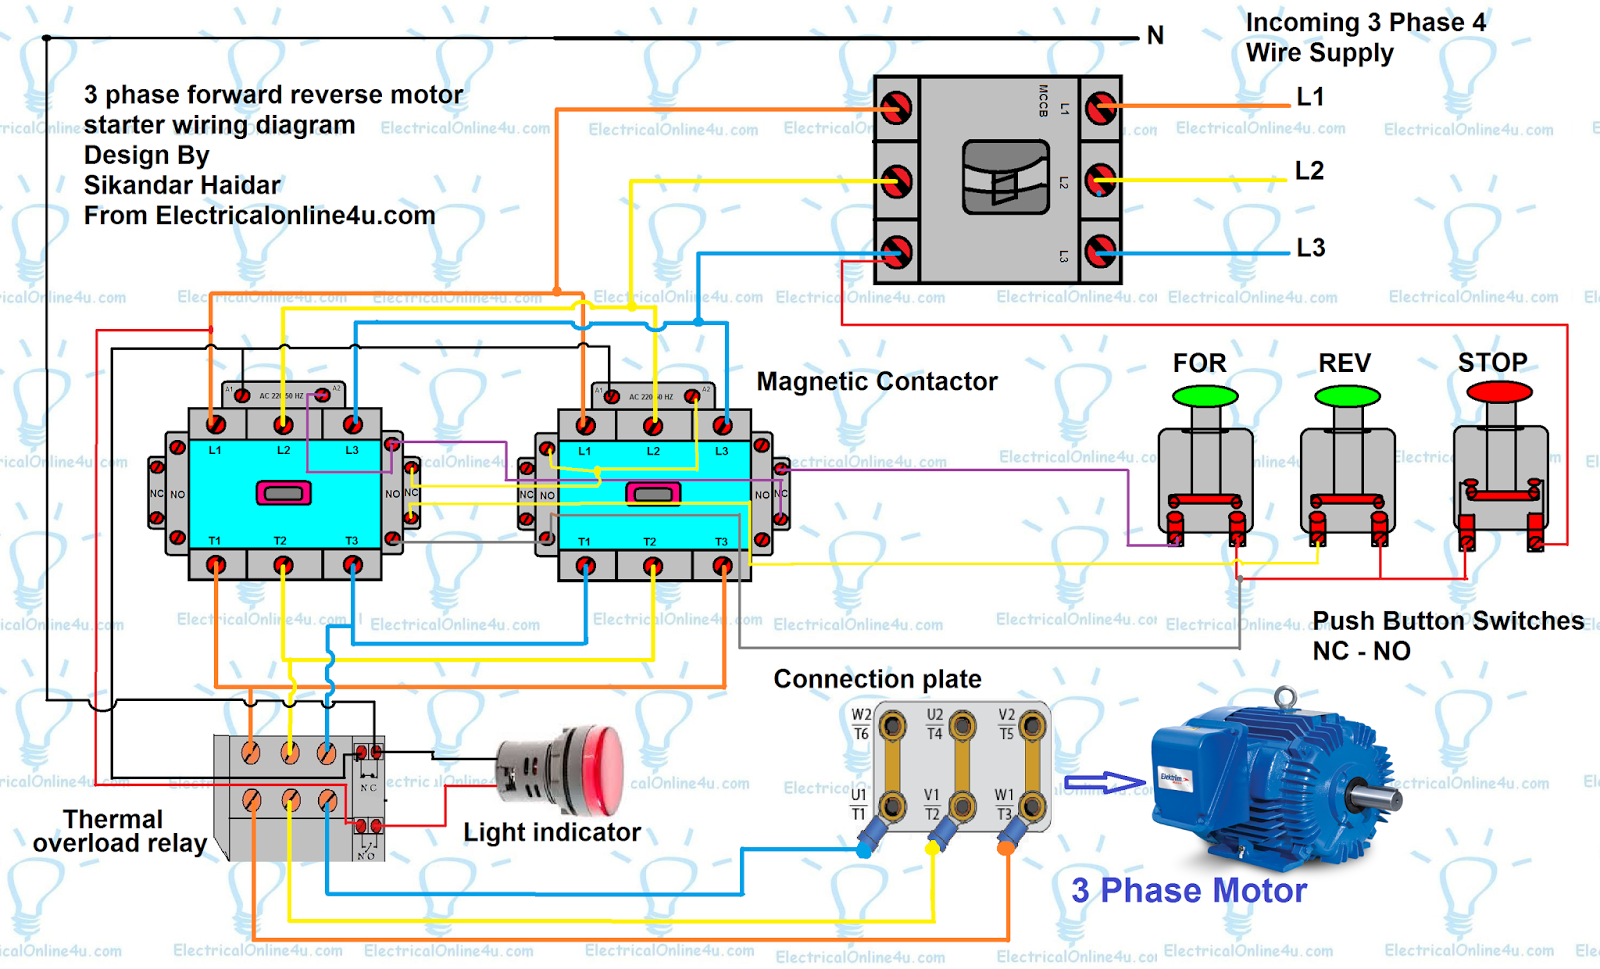 medium resolution of forward reverse motor control diagram for 3 phase motor electrical how to wire a double pole circuit breaker electrical online 4u